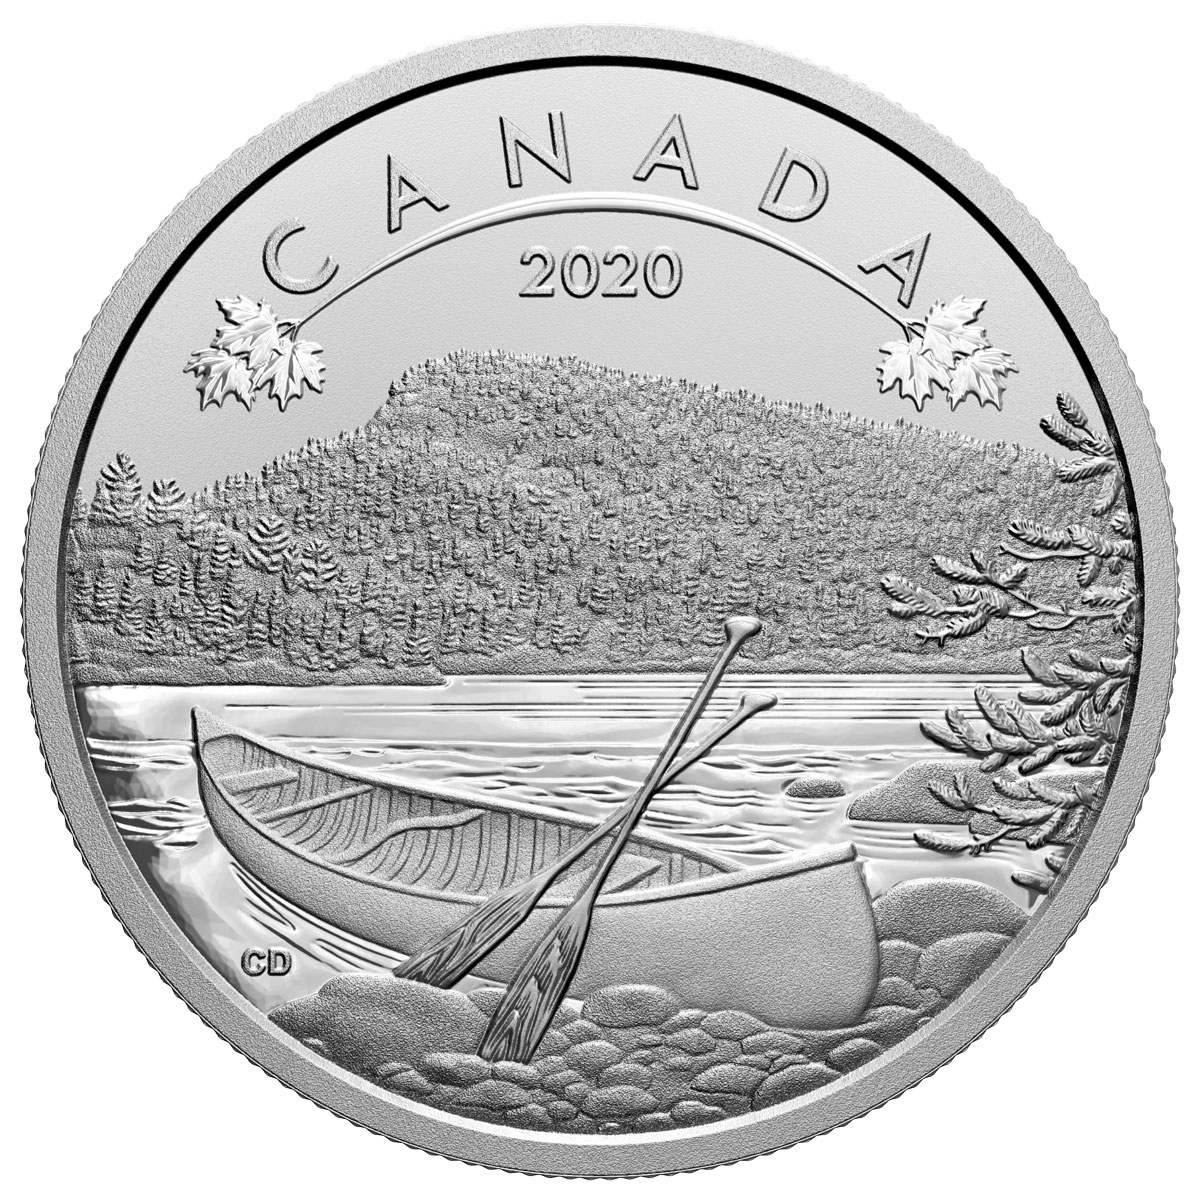 2020 Canada O Canada - Great Outdoors 1/2 oz Silver Matte Proof $10 Coin GEM Proof OGP